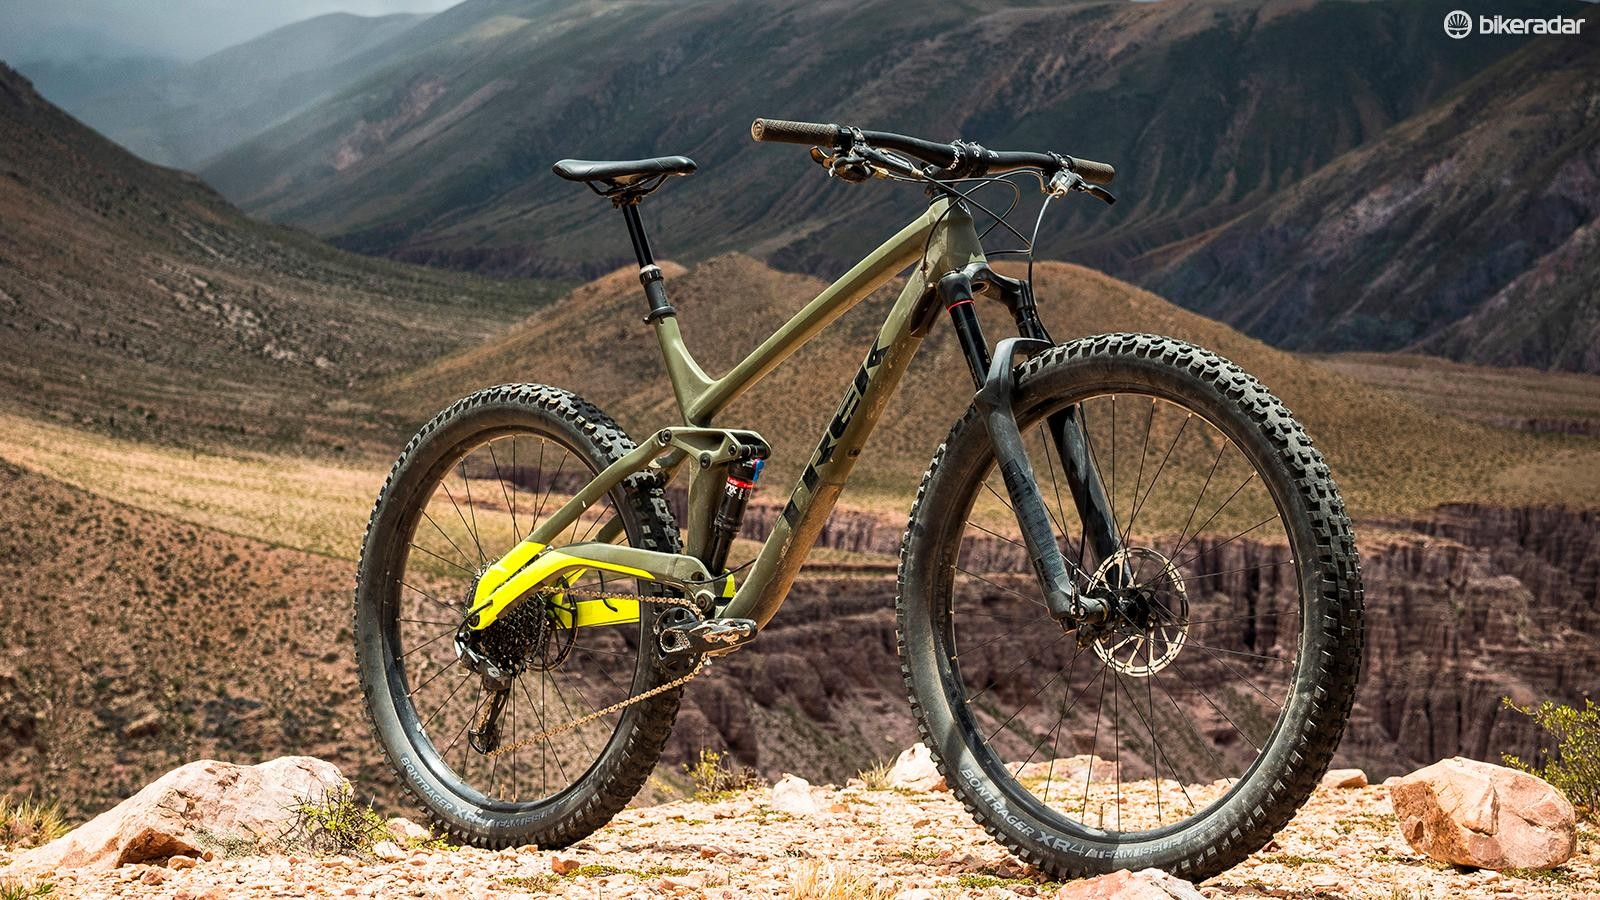 The Trek Full Stache combines 130mm of suspension, trail bike geometry and 29x3in tires